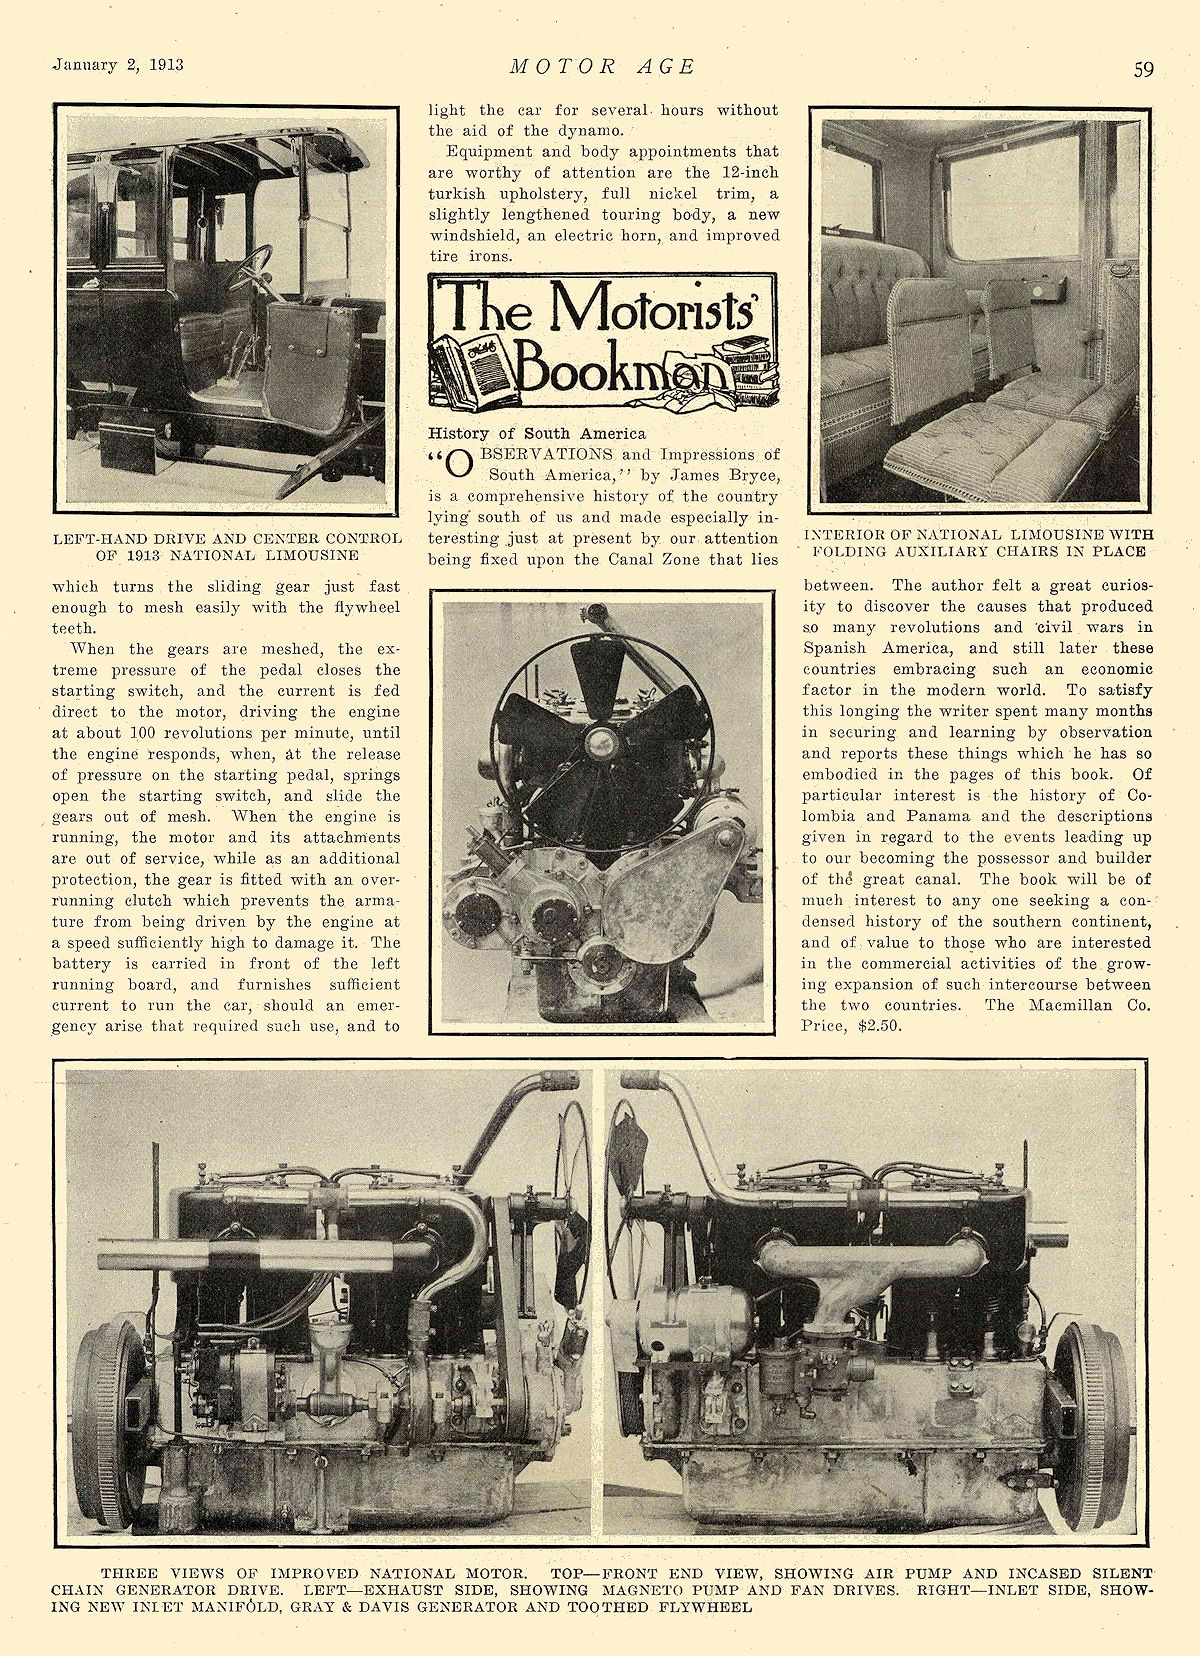 """1913 1 2 NATIONAL Article National """"SIX"""" $2375 Improved National Series V Announced National Motor Vehicle Co. Indianapolis, IND MOTOR AGE January 2, 1913 8.25″x12″ page 59"""